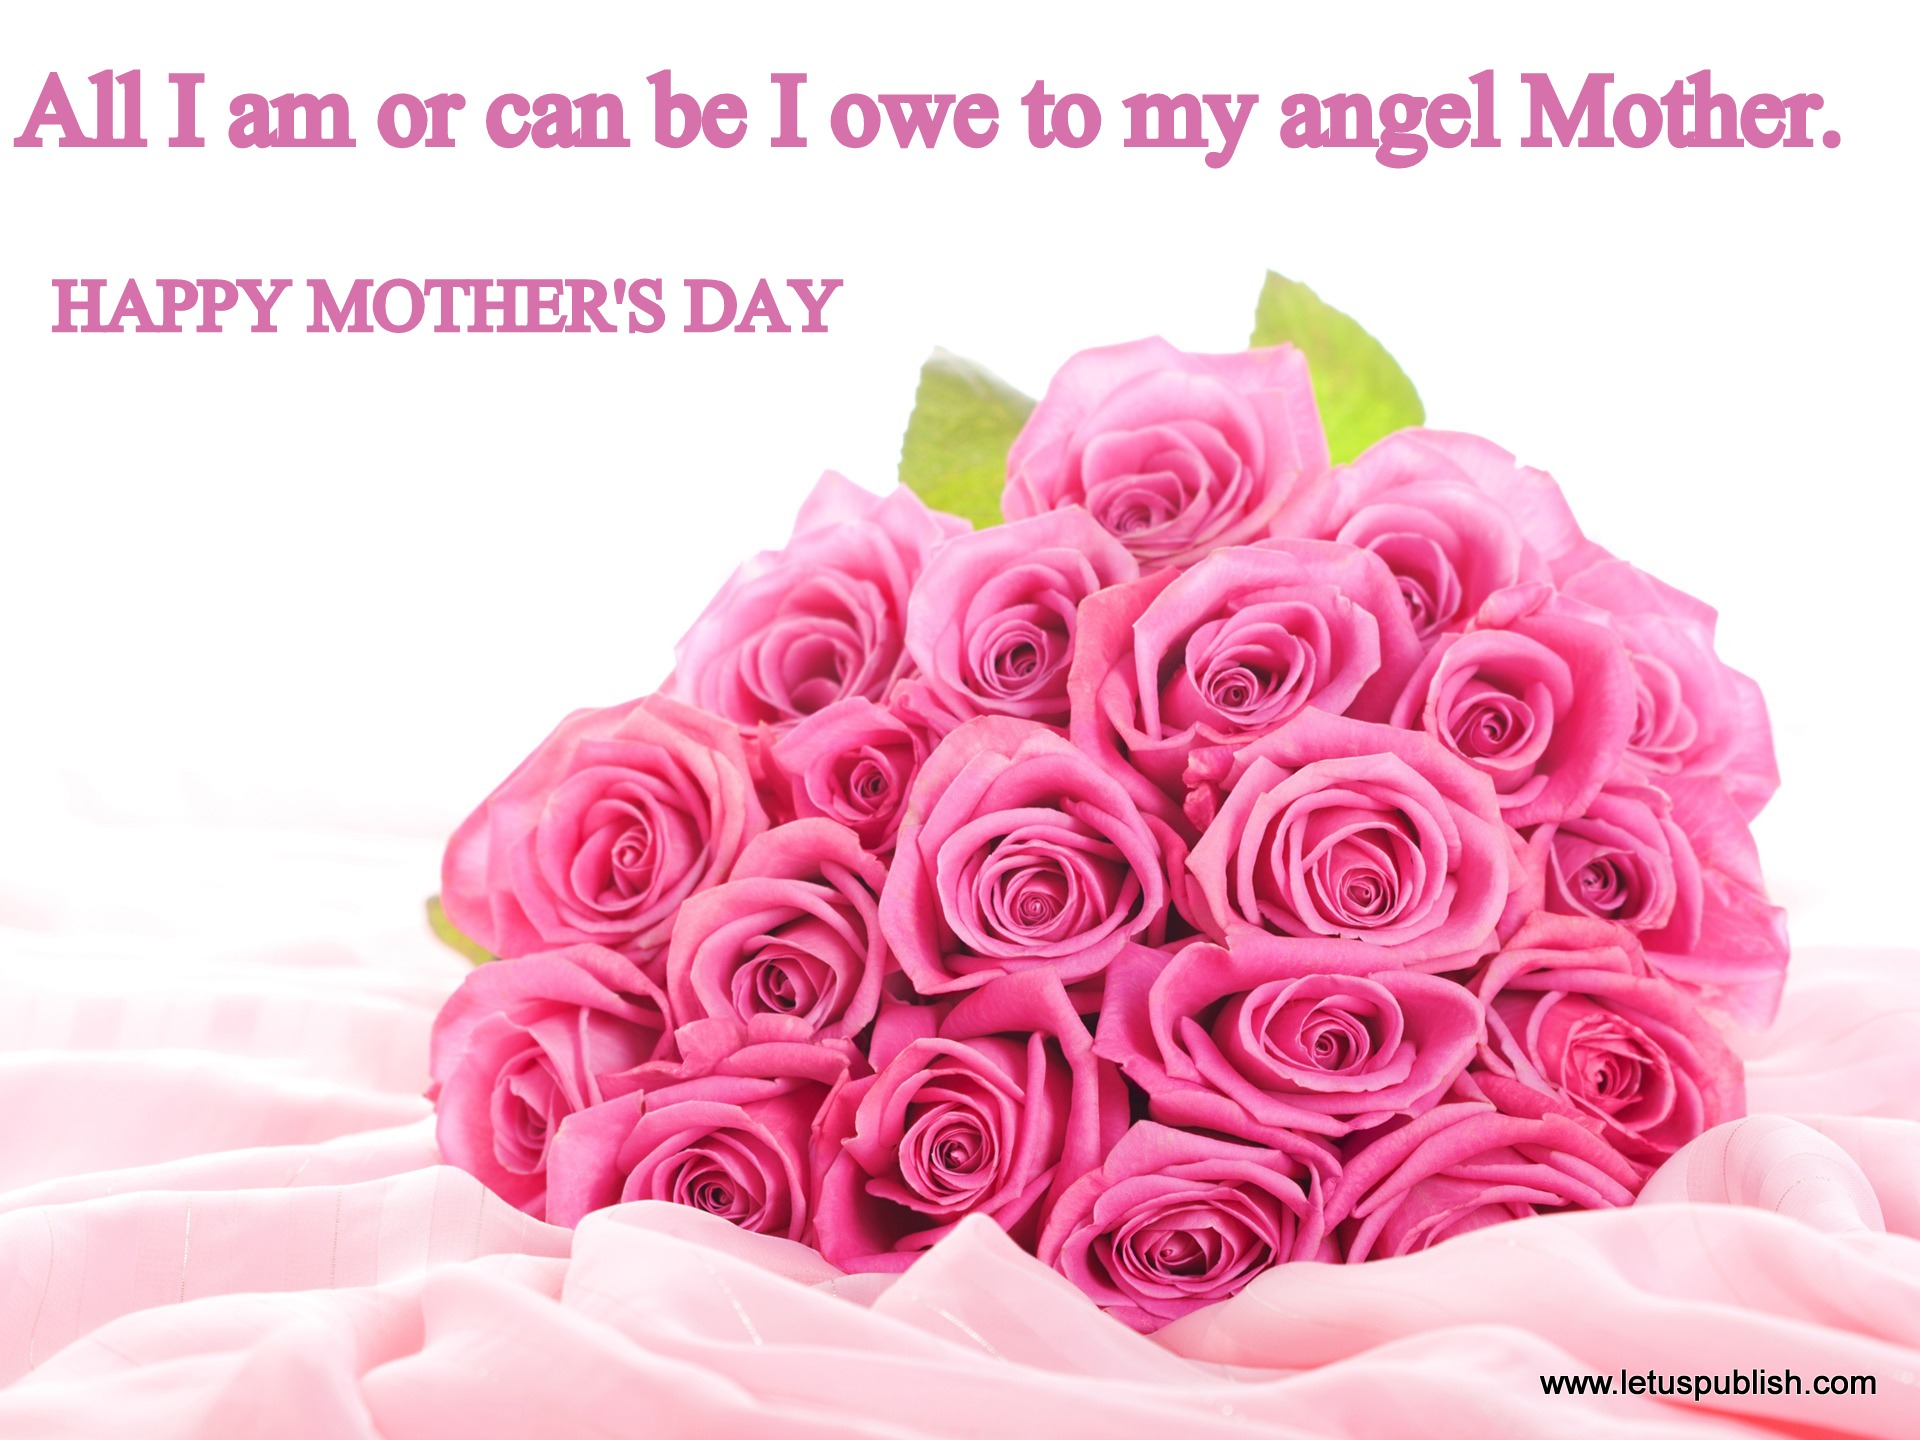 Mother's day hd wallpaper with Pink Roses and quotes